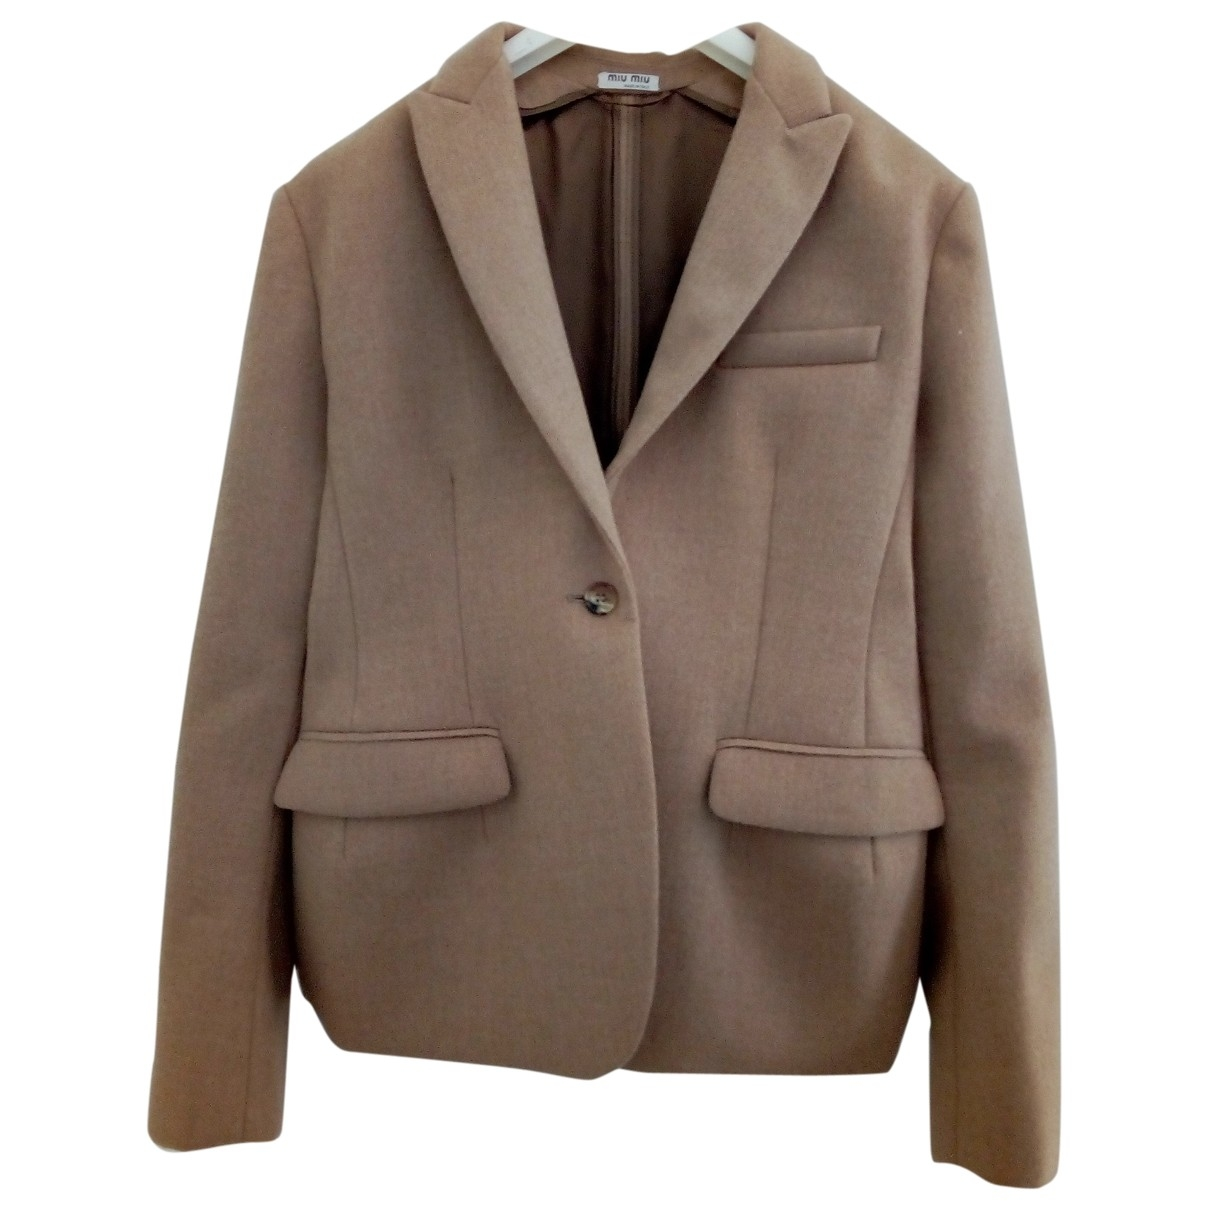 Miu Miu N Camel Wool jacket for Women 44 IT